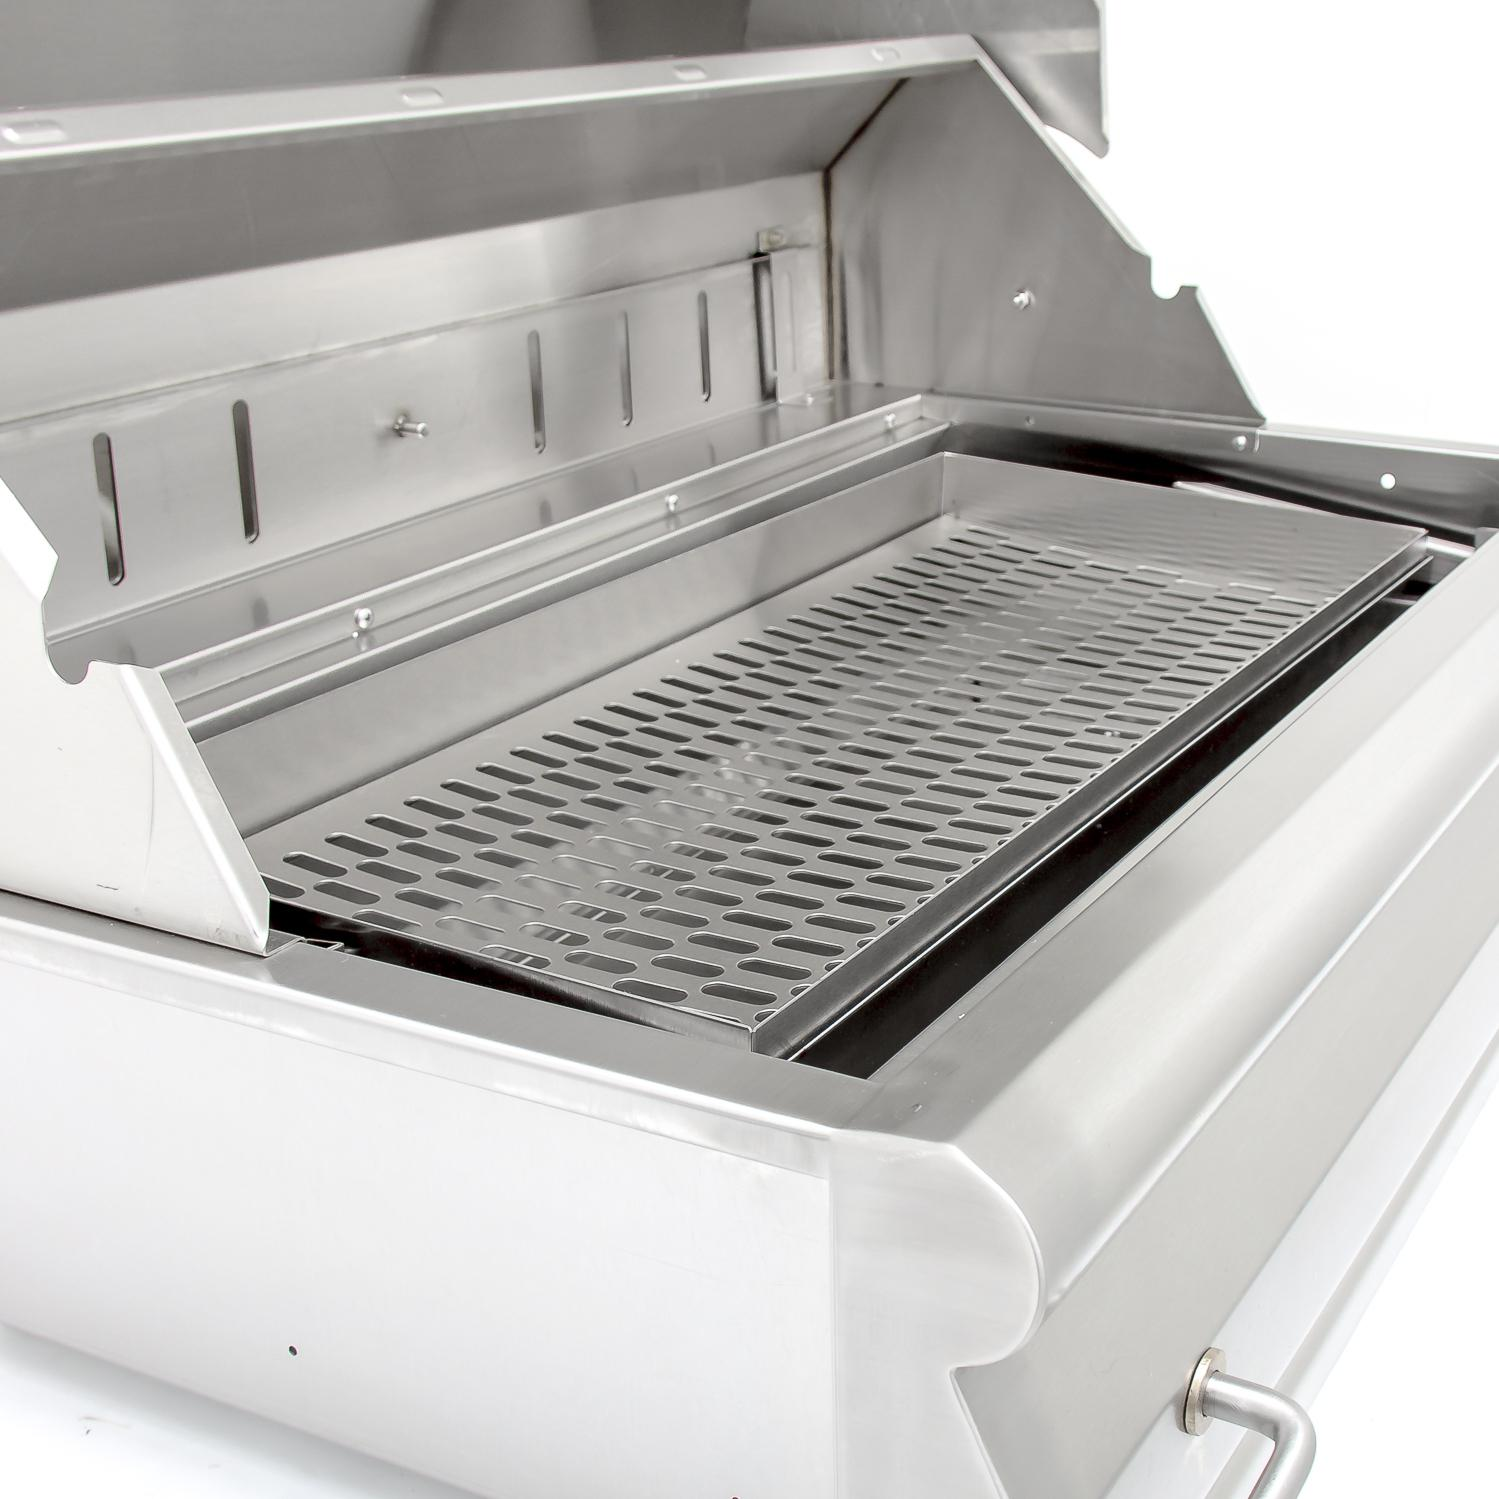 Grill Tray Blaze 32 Inch Built In Stainless Steel Charcoal Grill With